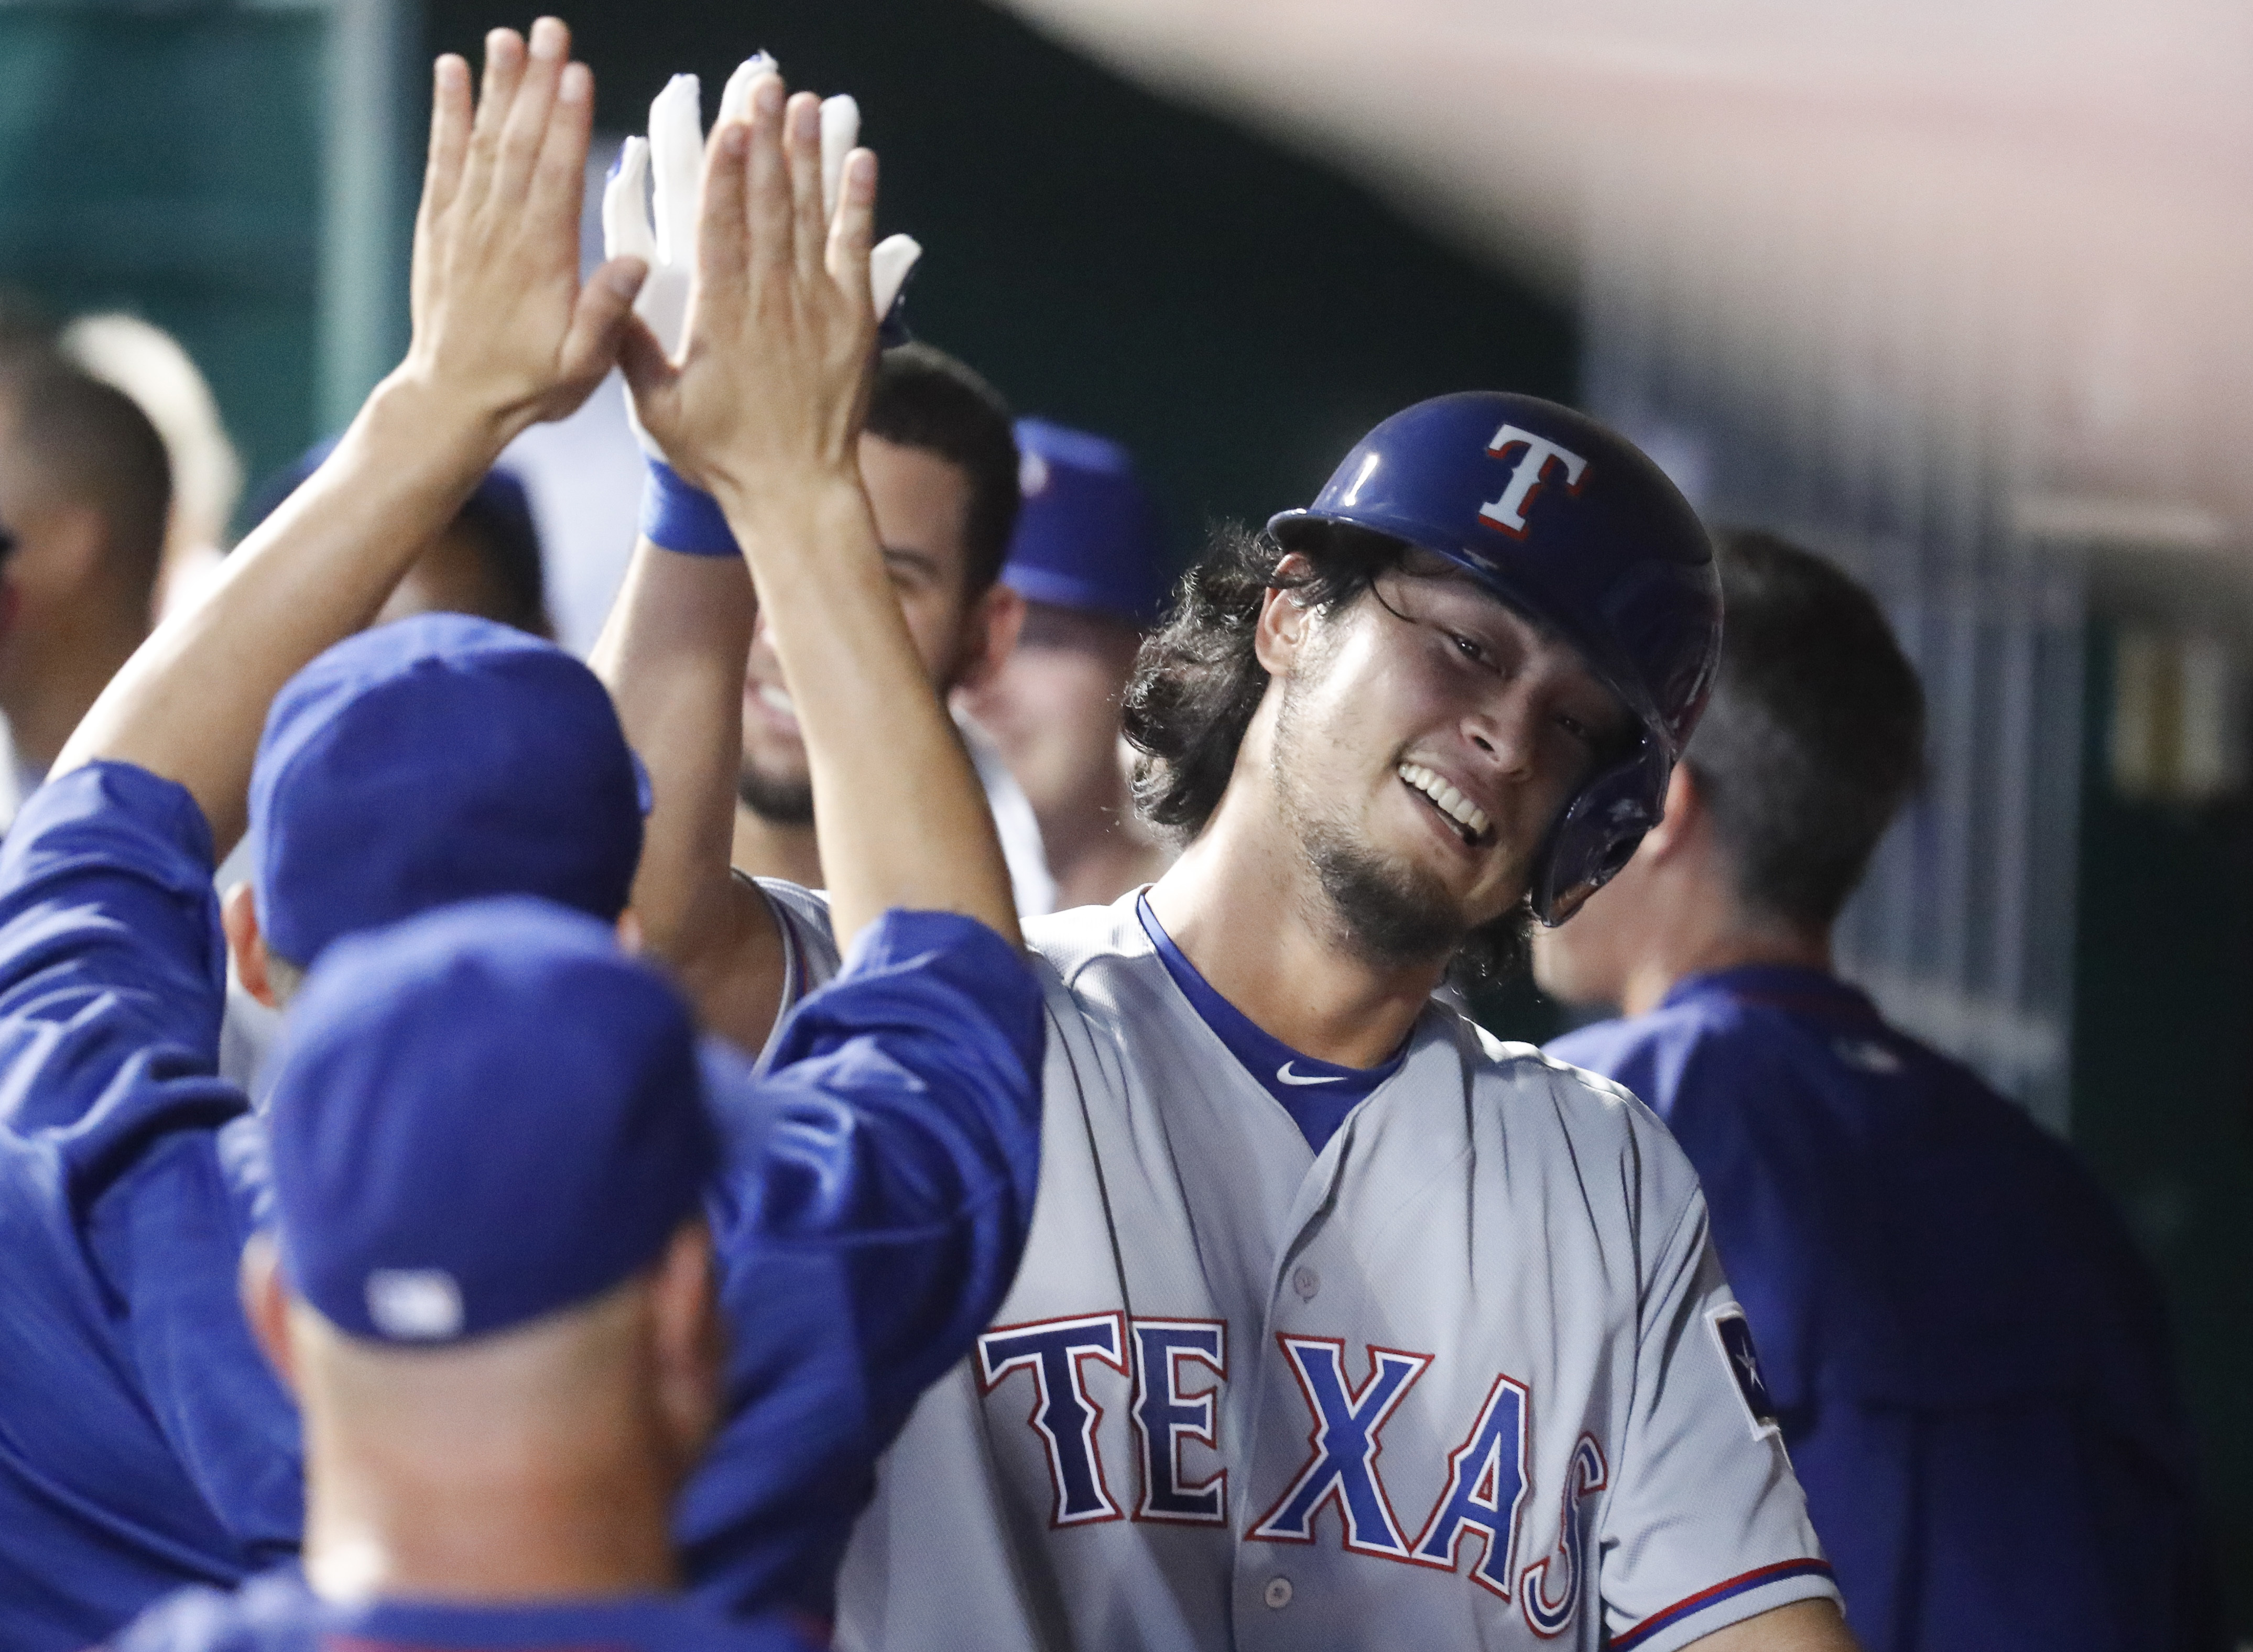 Texas Rangers' Yu Darvish rcelebrates in the dugout after hitting a solo home run off Cincinnati Reds starting pitcher Tim Adleman during the fifth inning of a baseball game, Wednesday, Aug. 24, 2016, in Cincinnati. (AP Photo/John Minchillo)